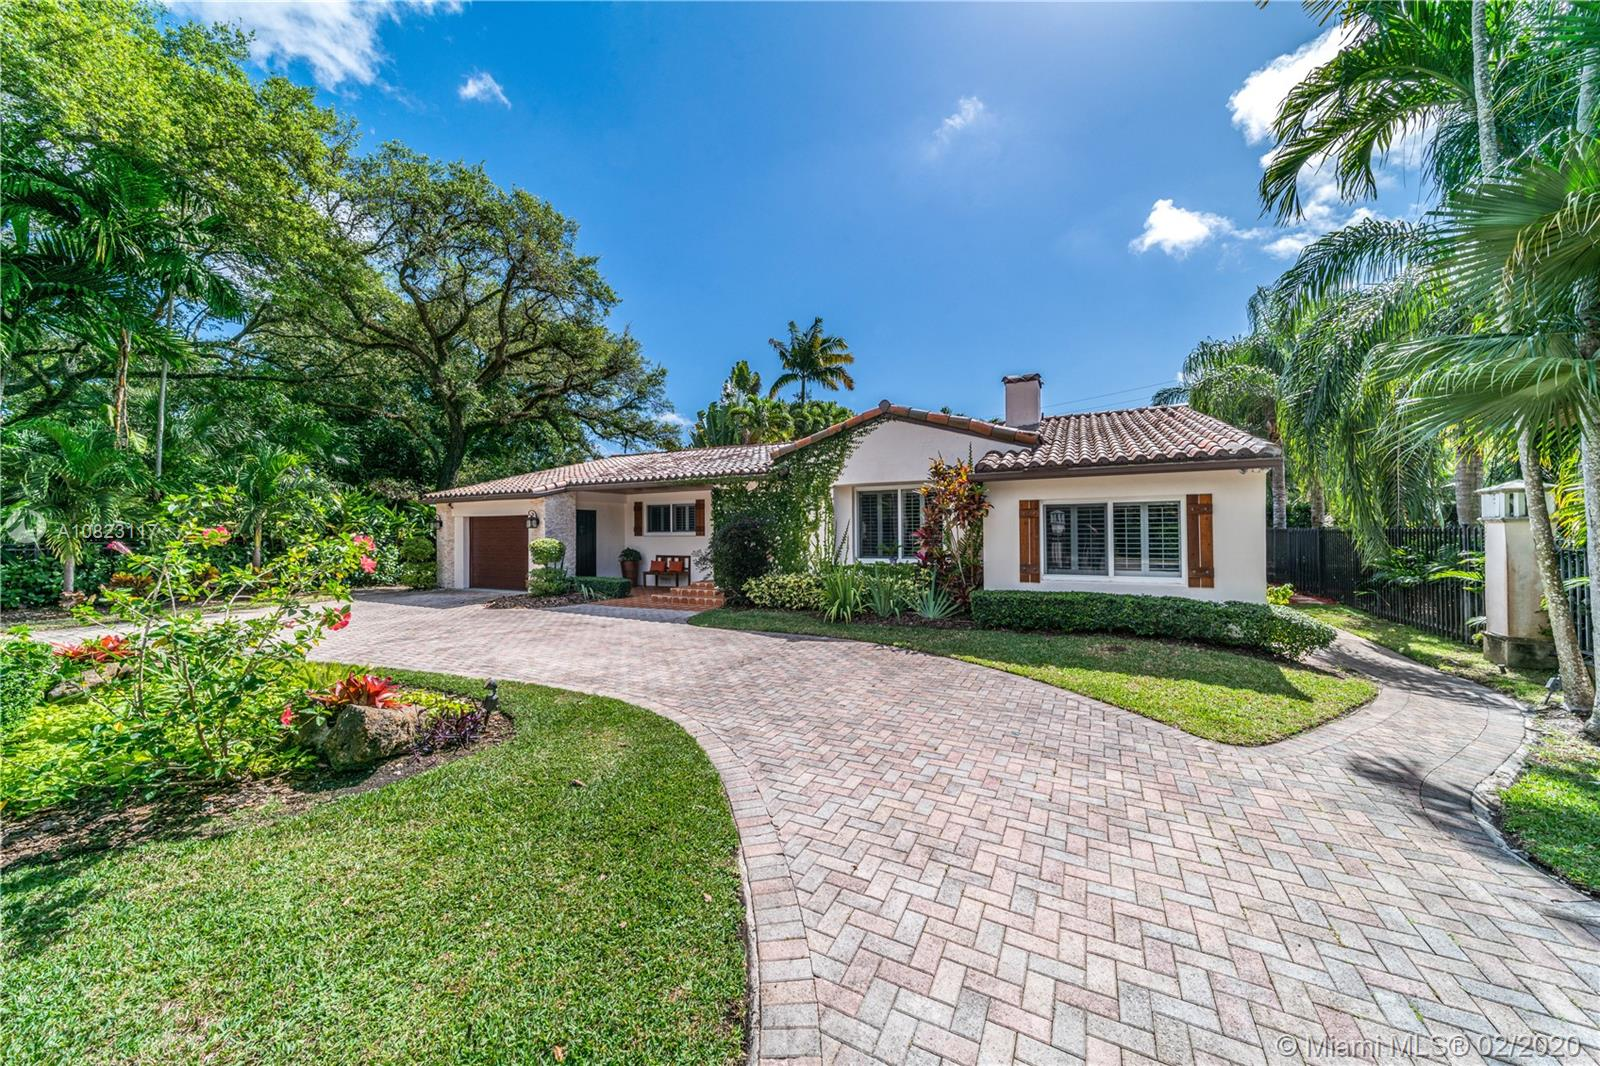 Spectacular Home centrally located in the heart of Coral Gables! Architecturally inspired Merrick home sits next to the historic Merrick gables house. Built in 1936 the home is unique! Very bright with a great layout..4-bedroom,4 bath & a 1 car garage! Only one block from the famed Granada golf course, a few blocks from the Biltmore & Venetian pool & minutes away from the gables downtown! Drive up to a private gate, brick pavers, barrel tile roof, impact windows & professionally done landscaping!! On the inside you'll find original pine wood floors & travertine tiles, fire place, exposed wood ceiling, plantation blinds, updated kitchen & bathrooms! Spacious split-level floor plan w/large rooms w/California closets! Wonderful backyard for entertaining & grilling with a 10 ft deep pool!